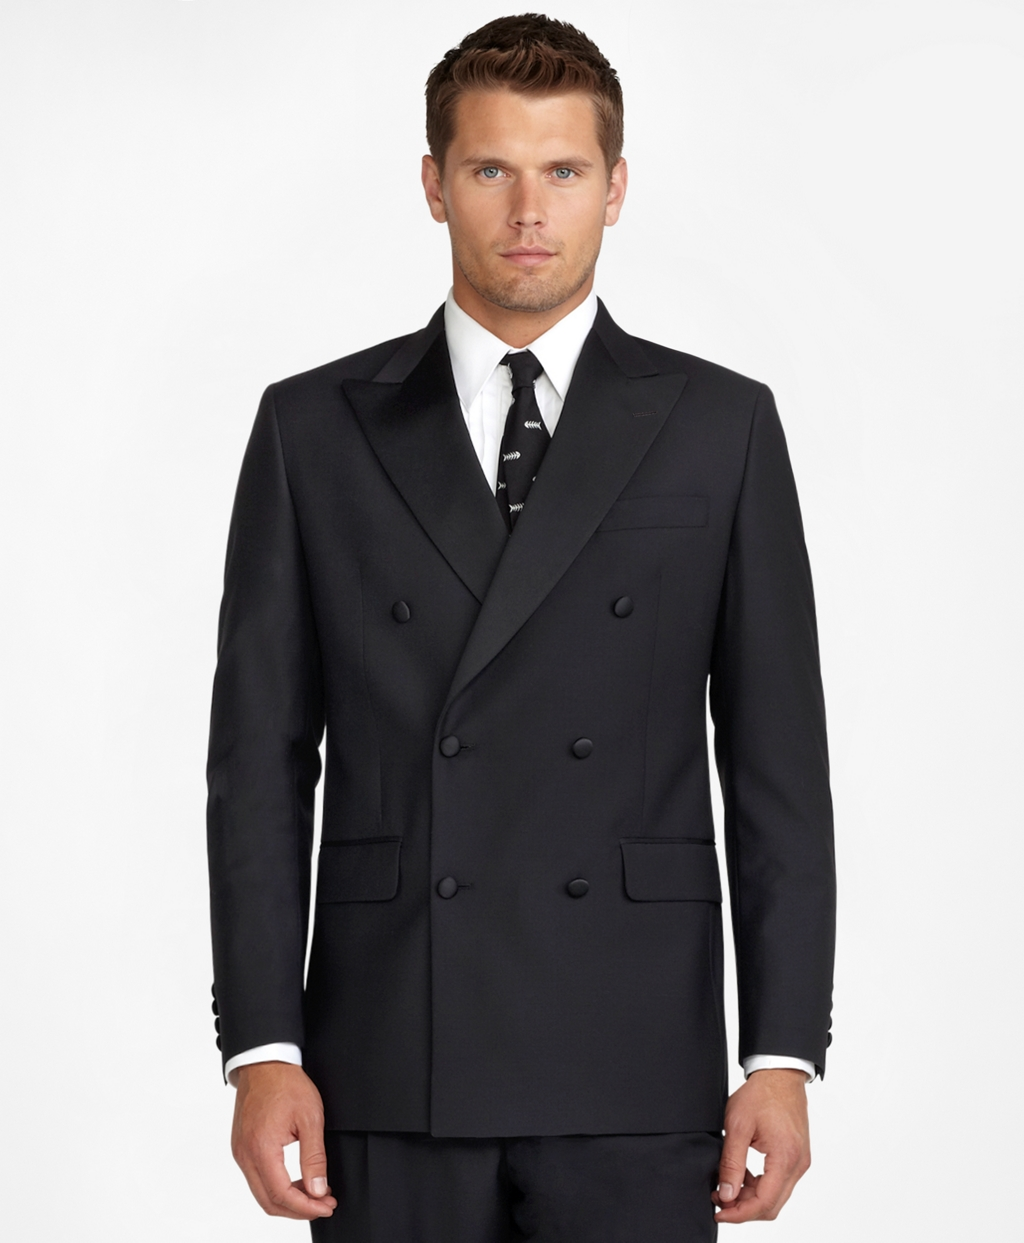 New Vintage Tuxedos, Tailcoats, Morning Suits, Dinner Jackets Brooks Brothers Mens Double-Breasted Tuxedo Jacket $898.00 AT vintagedancer.com